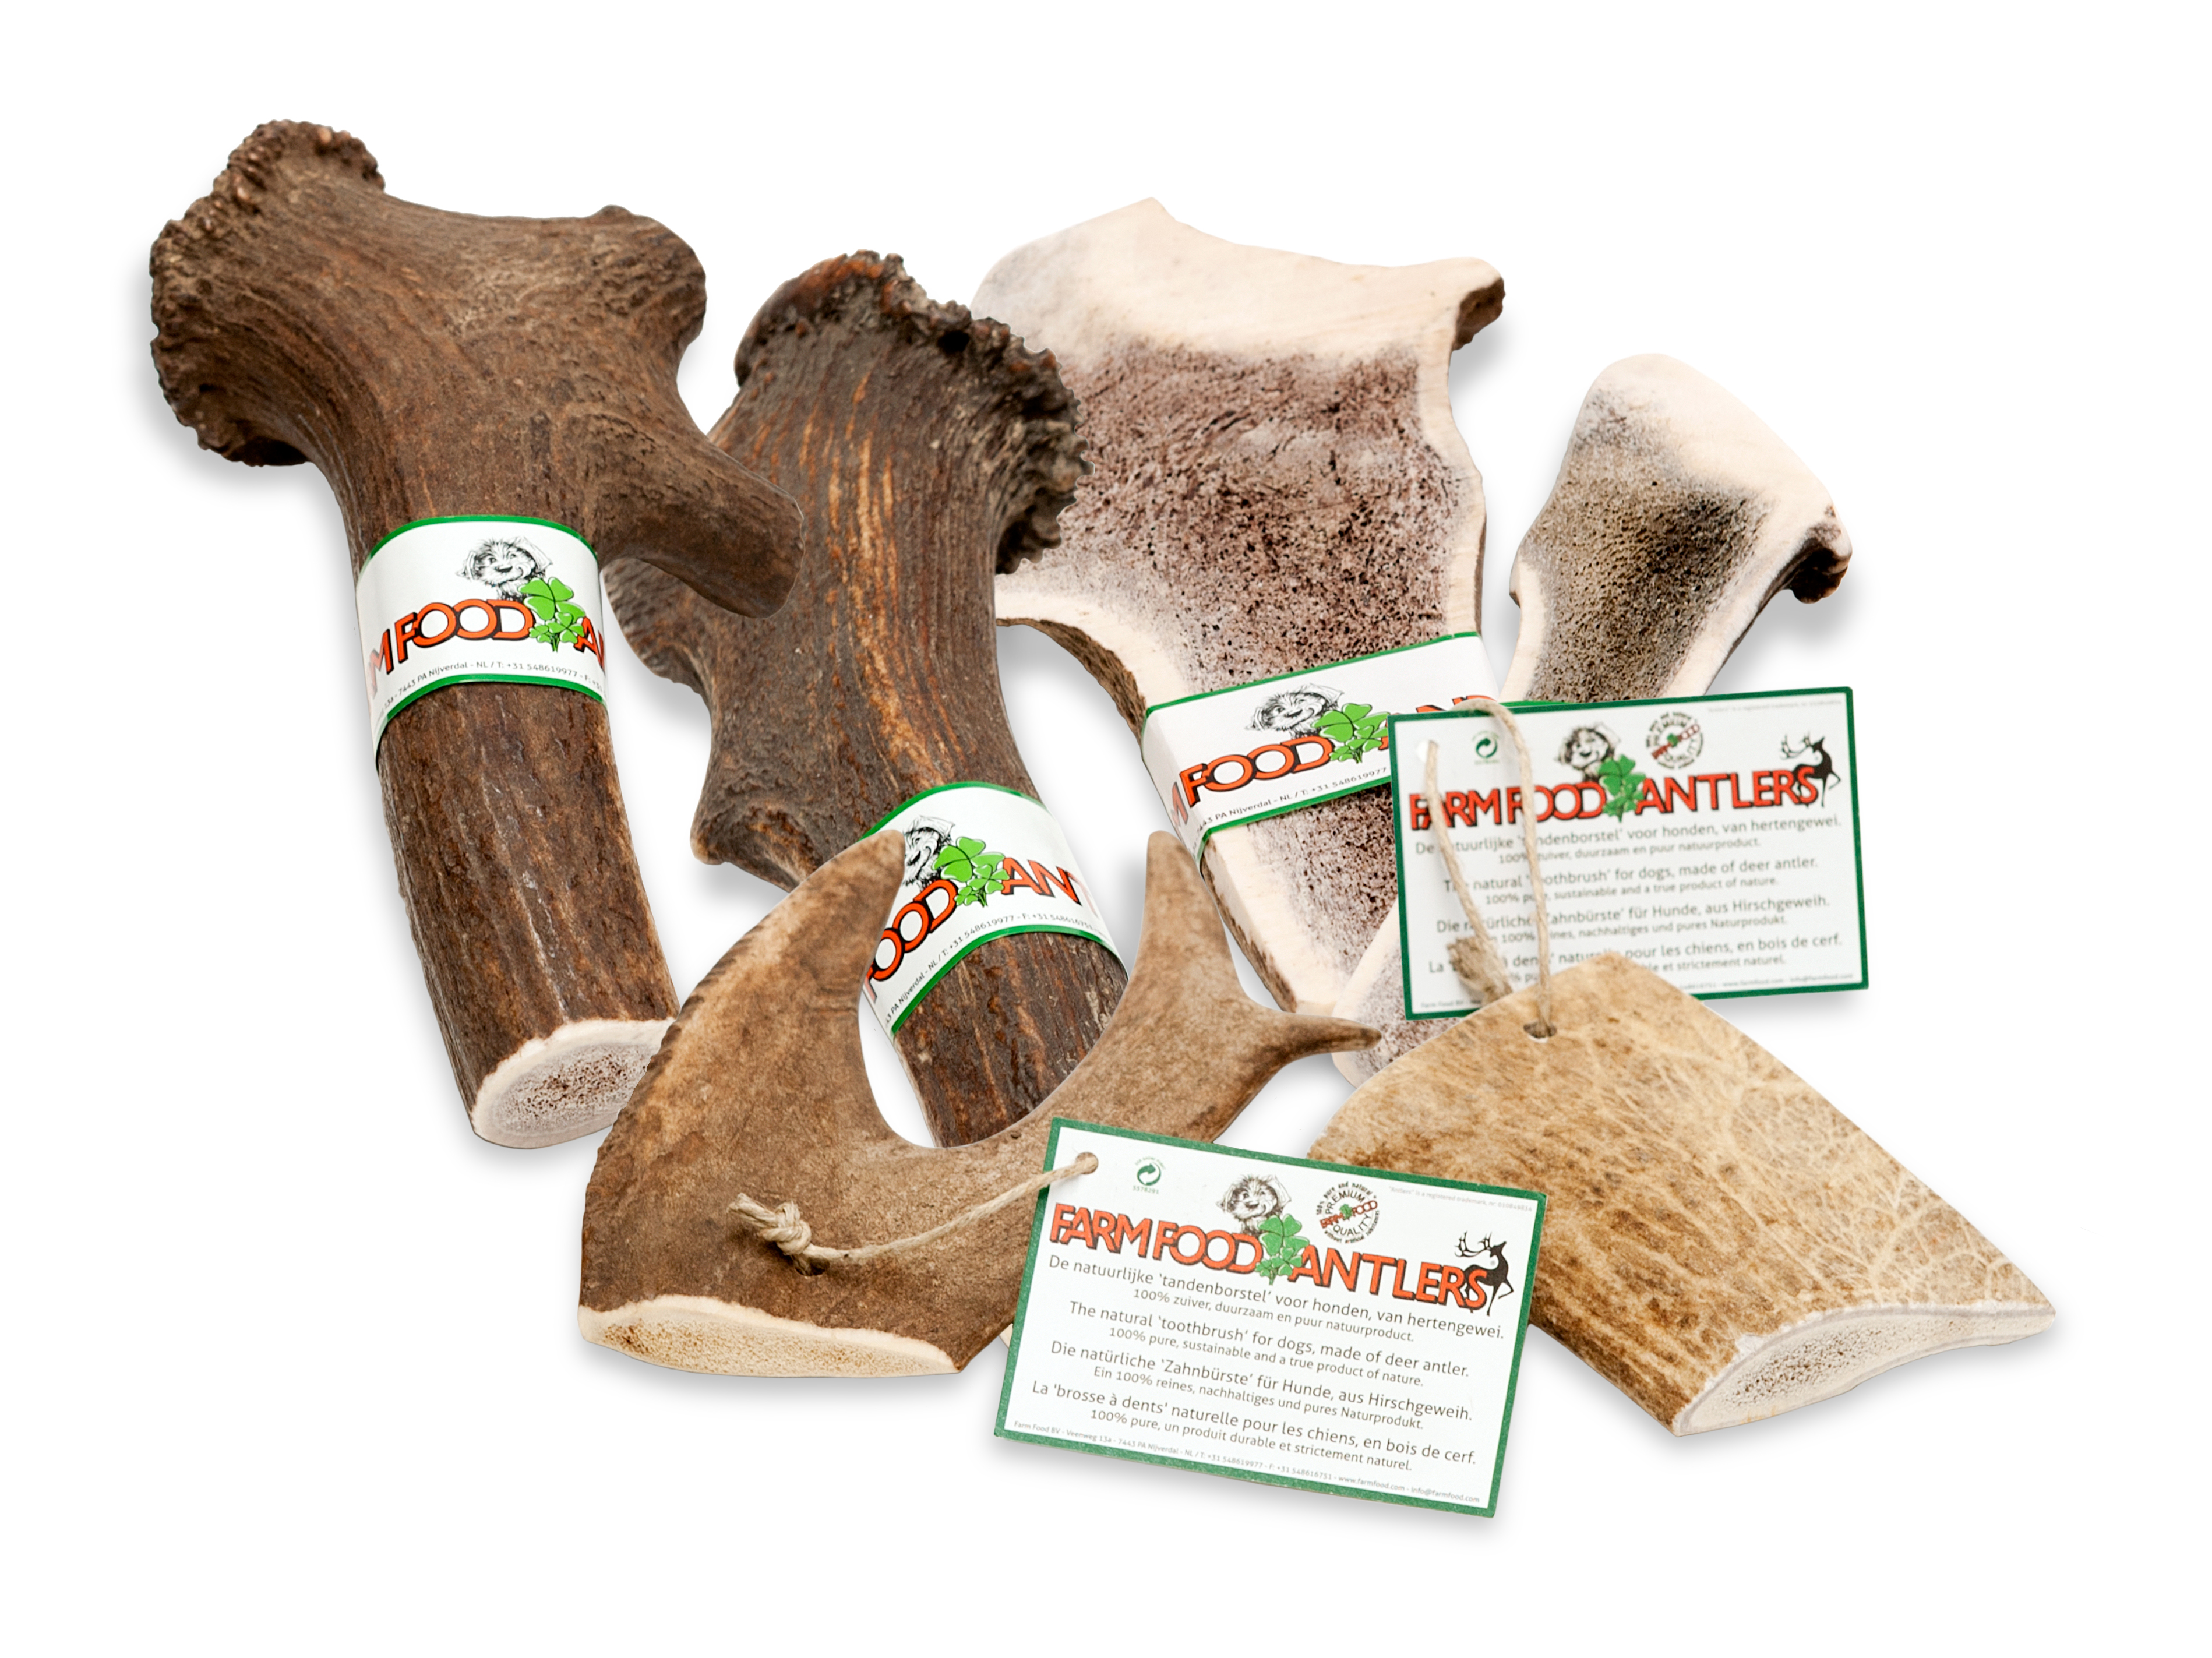 Details about Farmfood Natural Stag Antler Chew Dog Toy bar Healthy long  lasting marrow